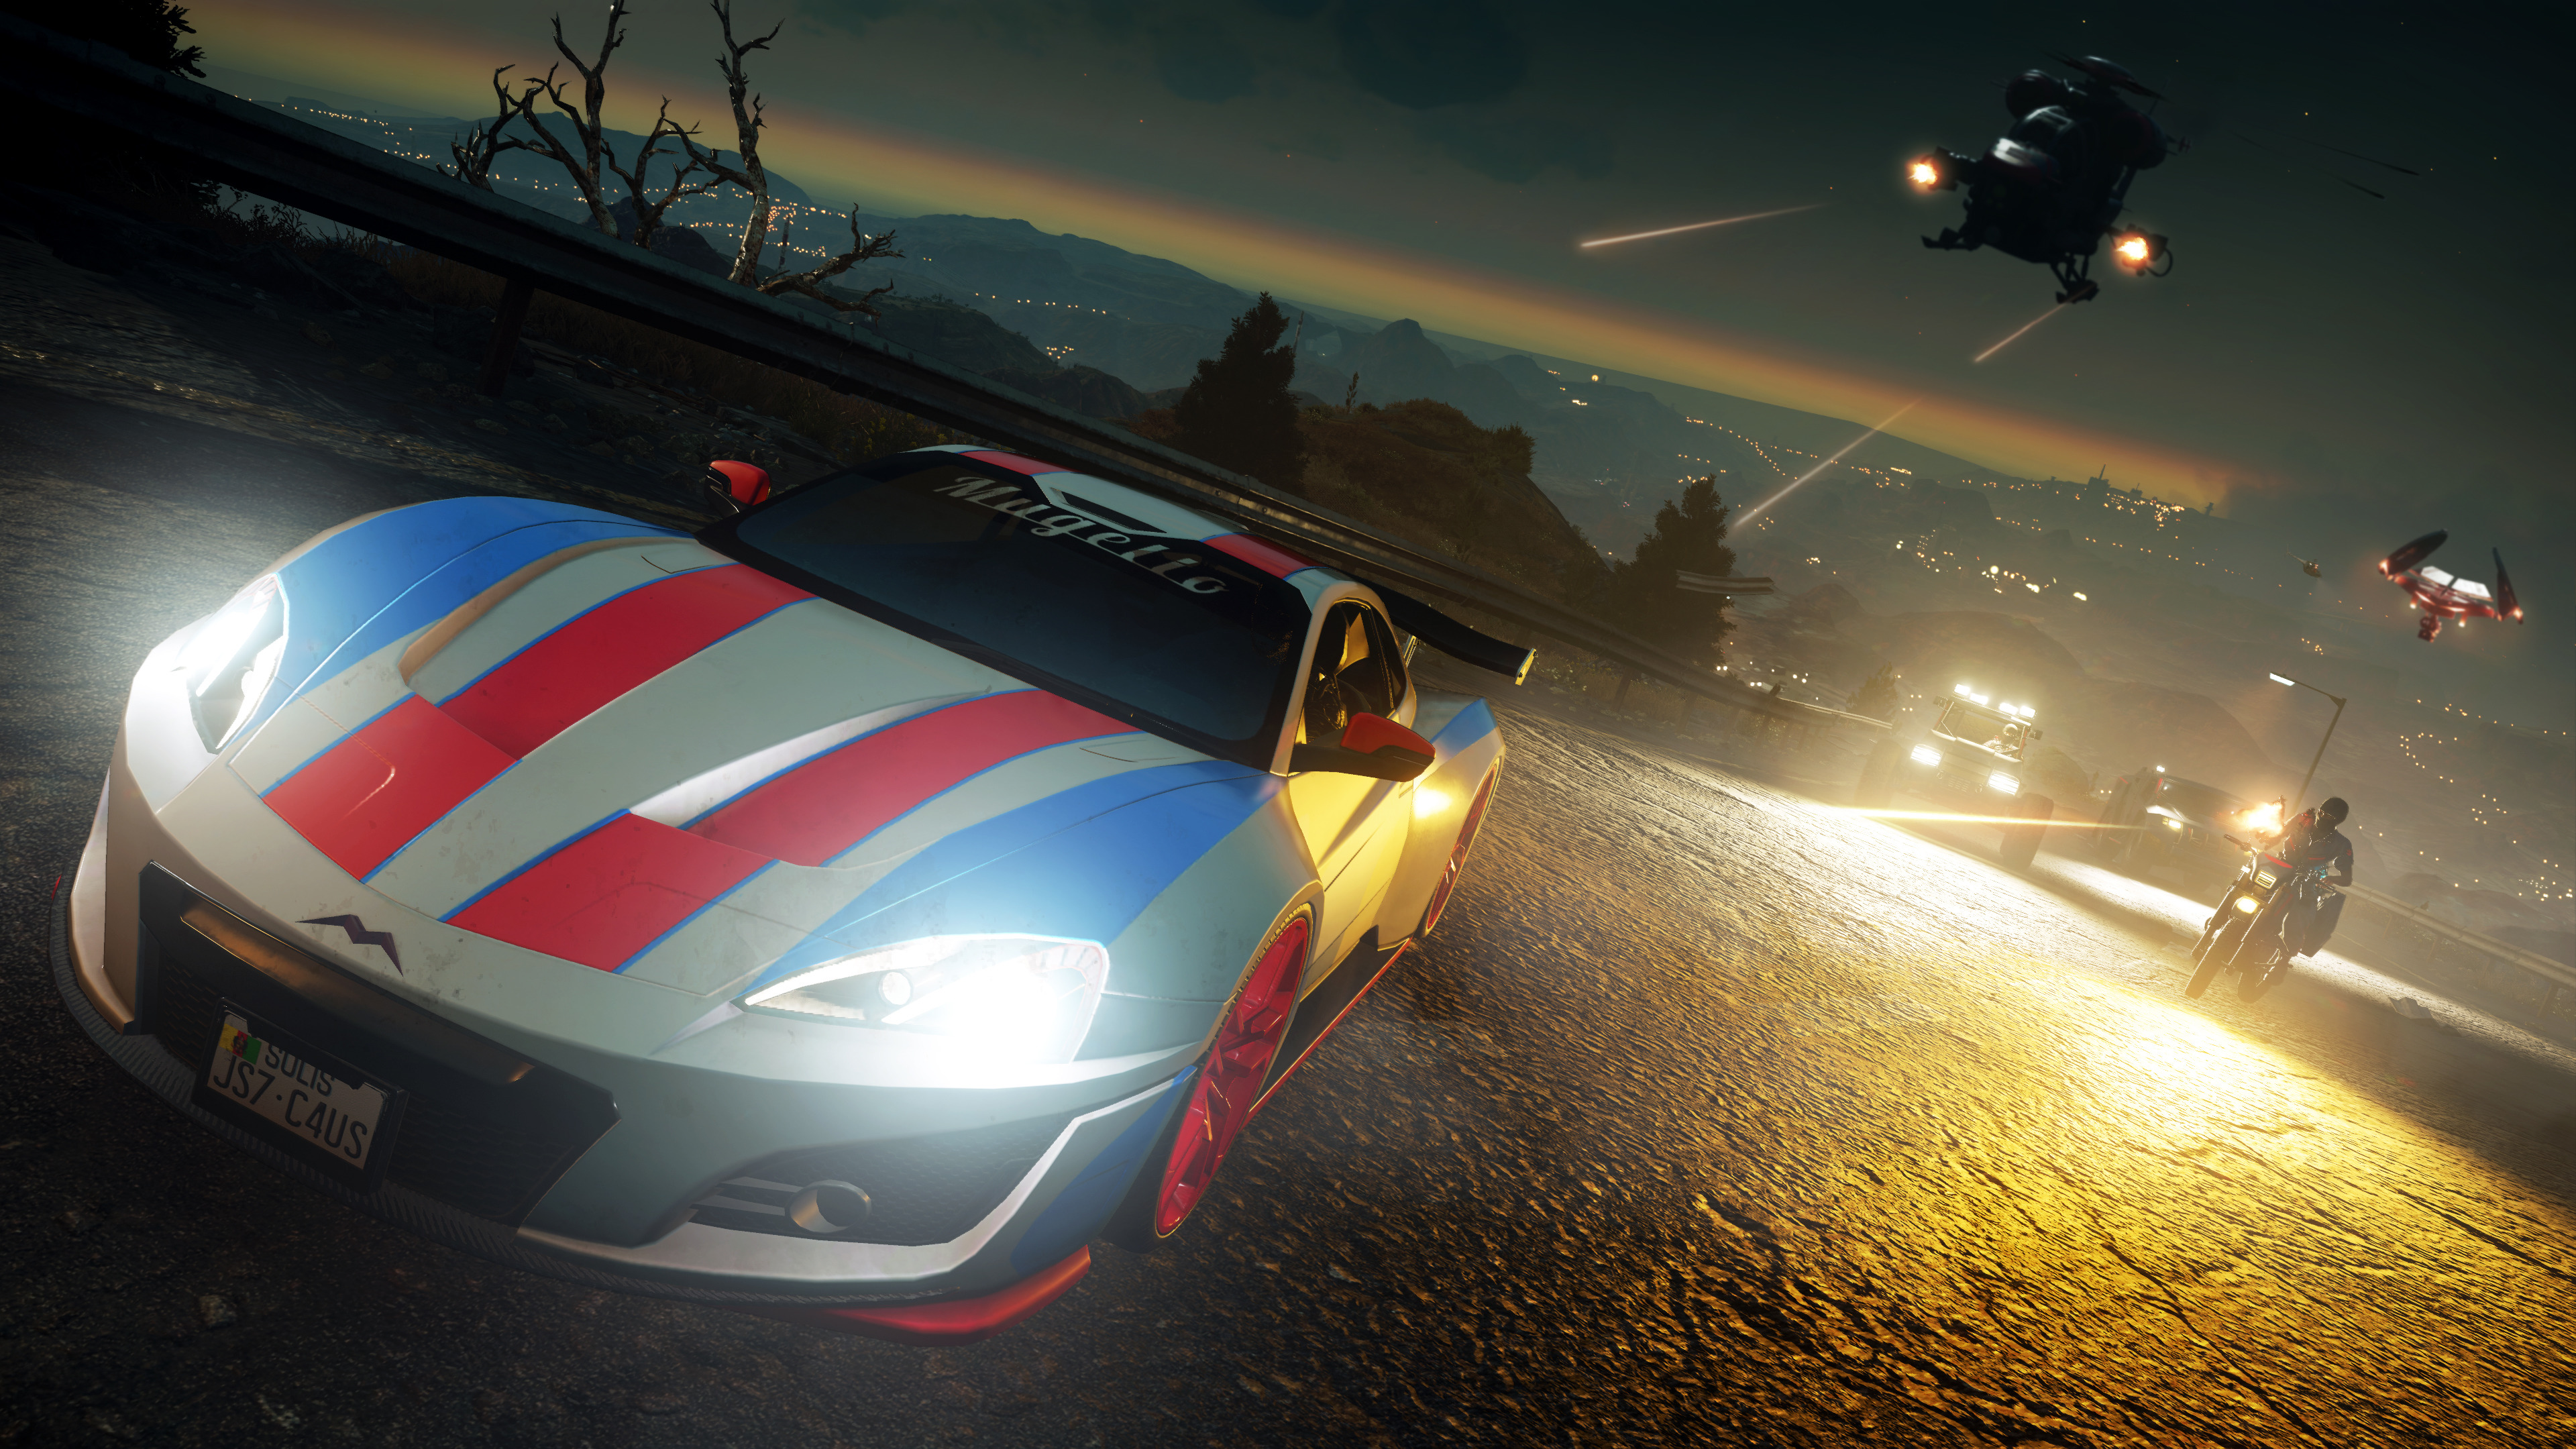 just cause 4 police chase 4k 1543621094 - Just Cause 4 Police Chase 4k - just cause 4 wallpapers, hd-wallpapers, games wallpapers, 4k-wallpapers, 2019 games wallpapers